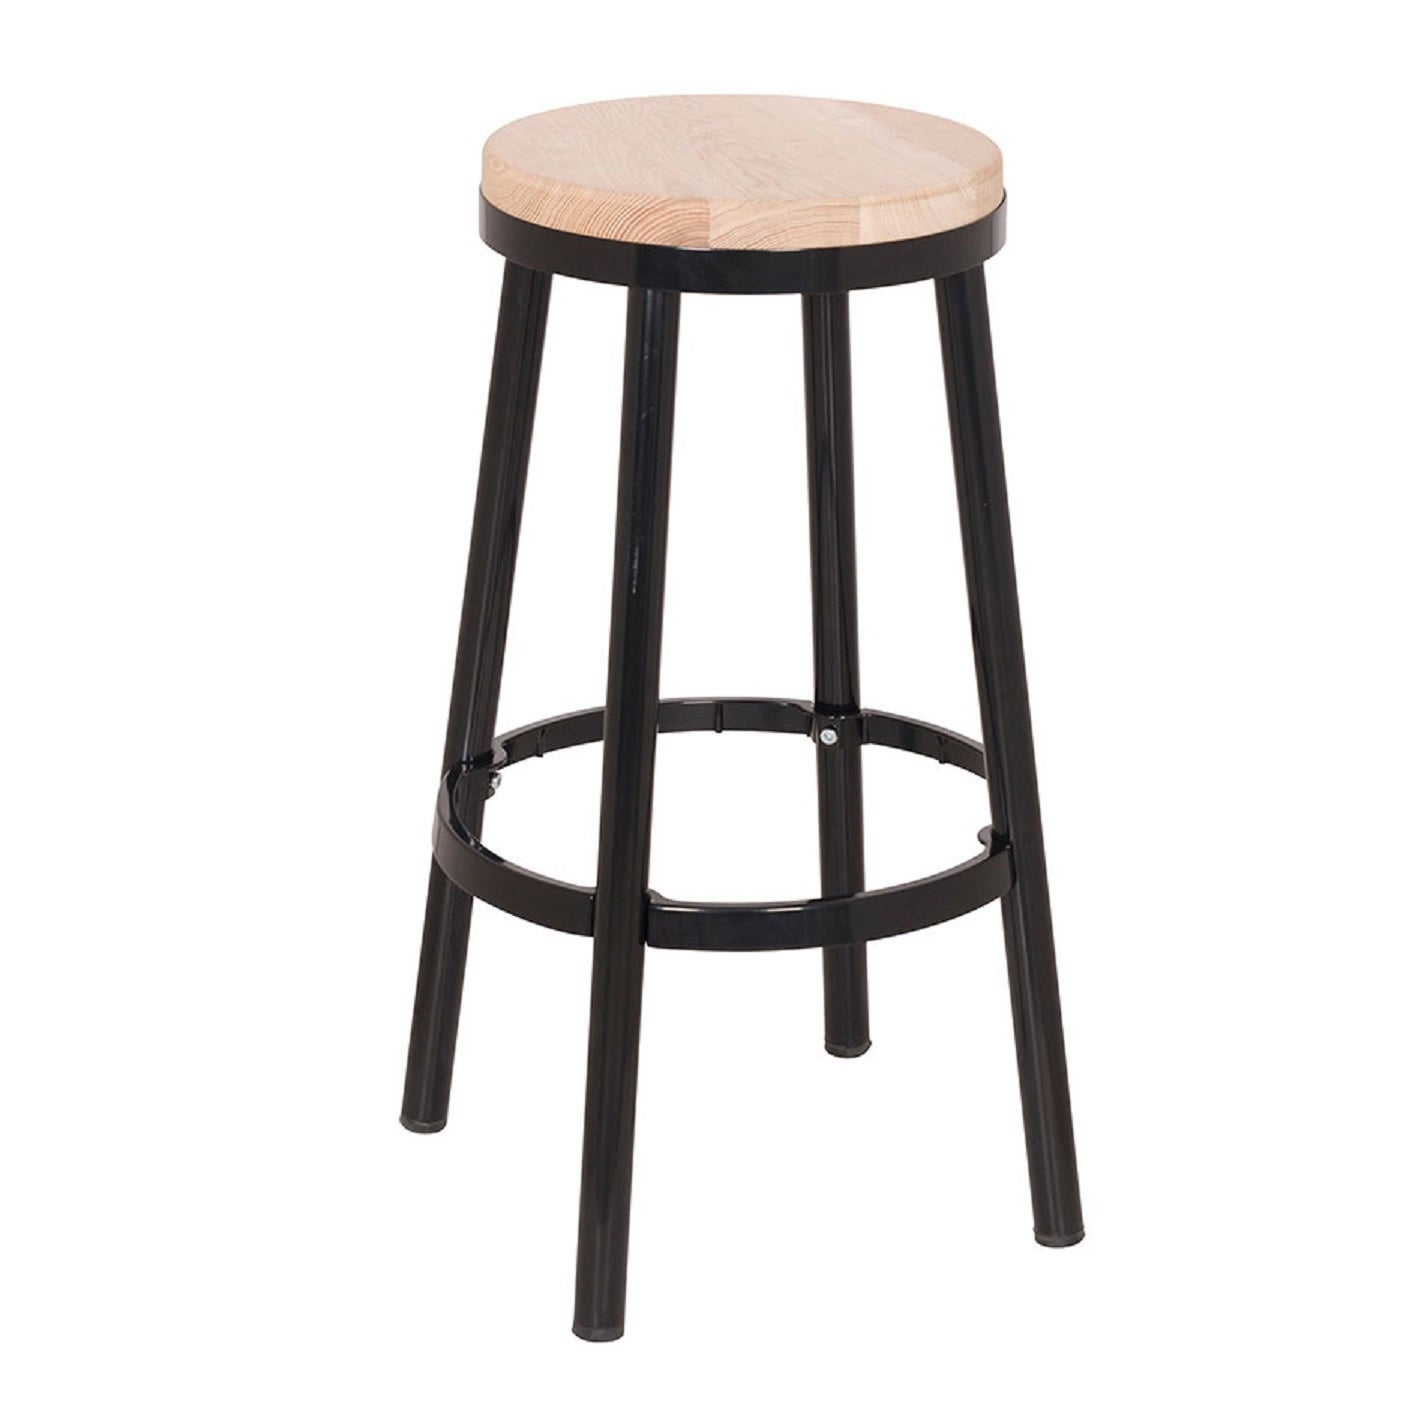 Osp Home Furnishings Modern Round Backless Metal And Ash Wood 26 Inch Bar Stool